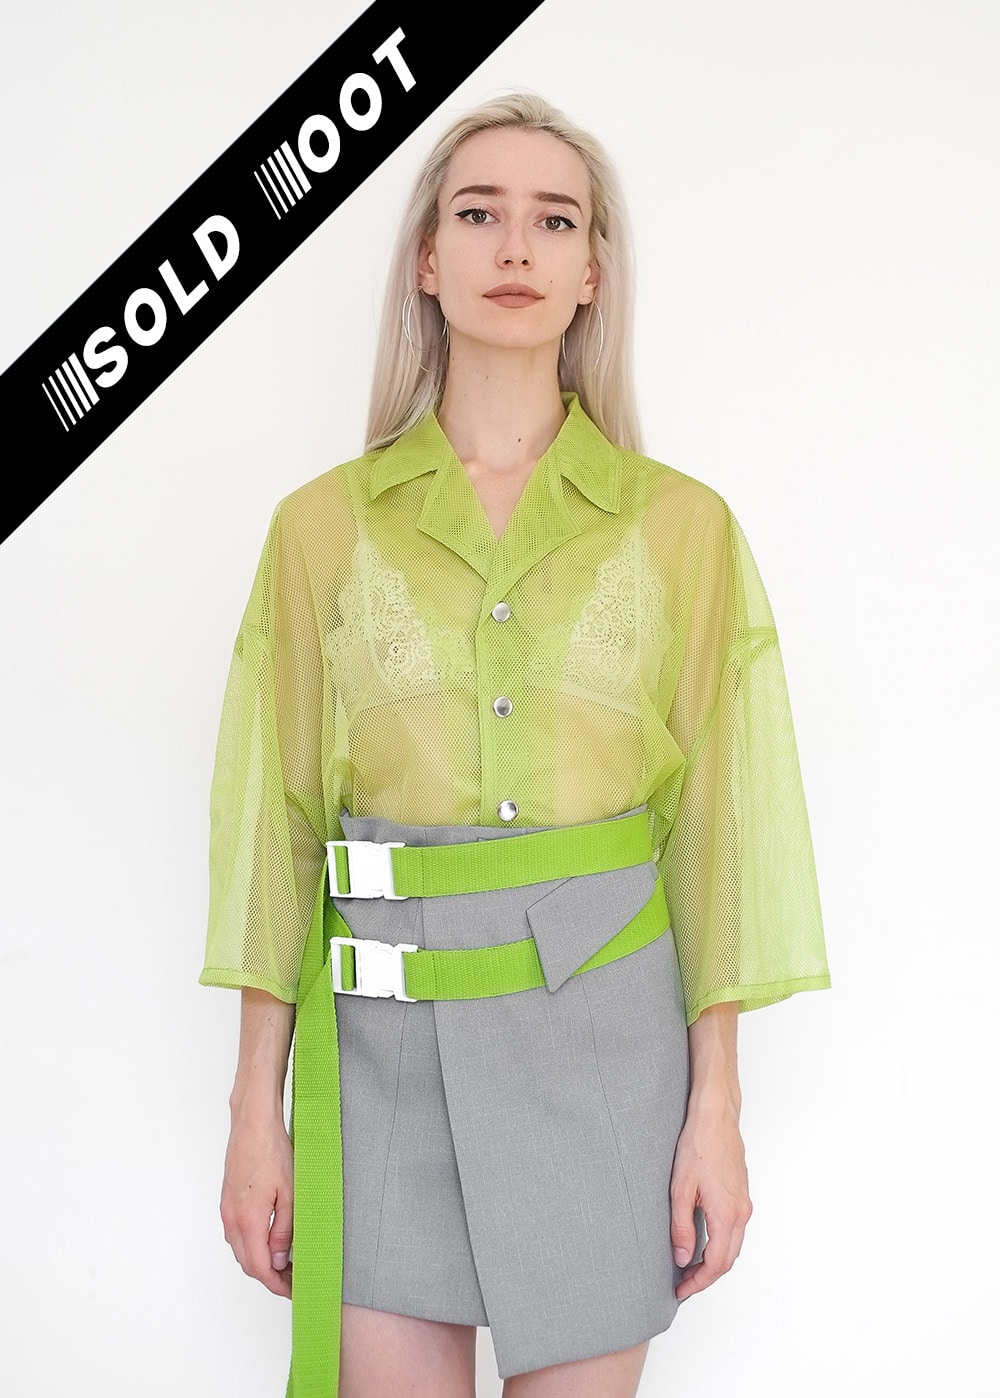 LIMITED ED Green Mesh Shirt 363